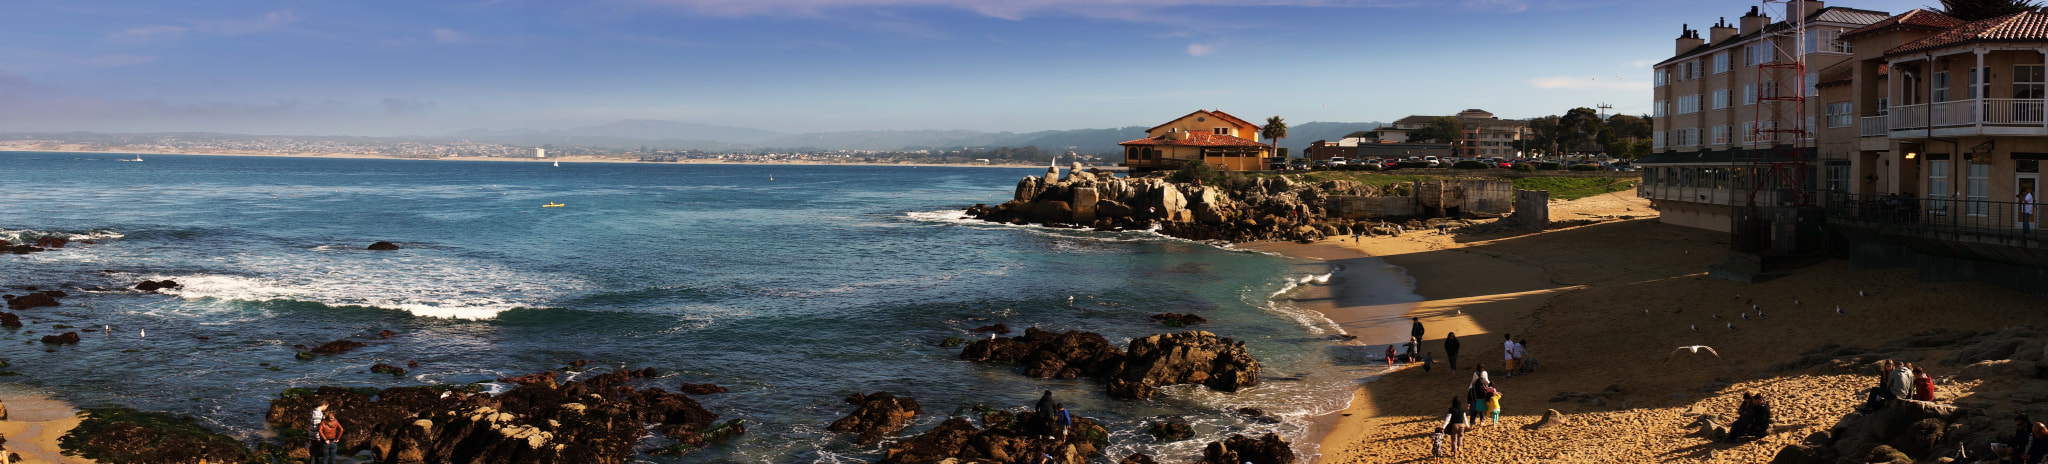 Photograph Monterey Bay by Good Life on 500px